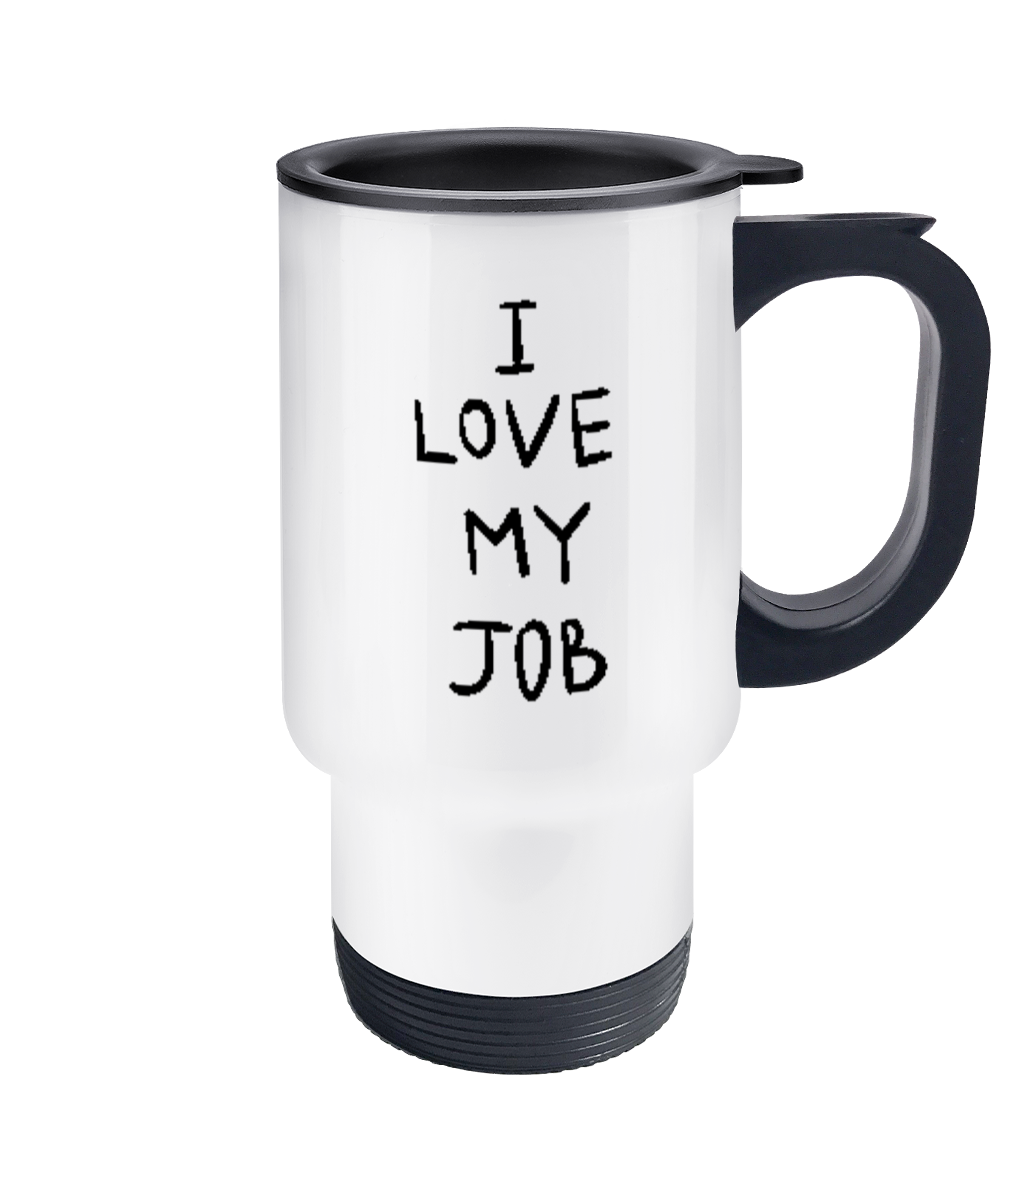 Novelty Travel mug